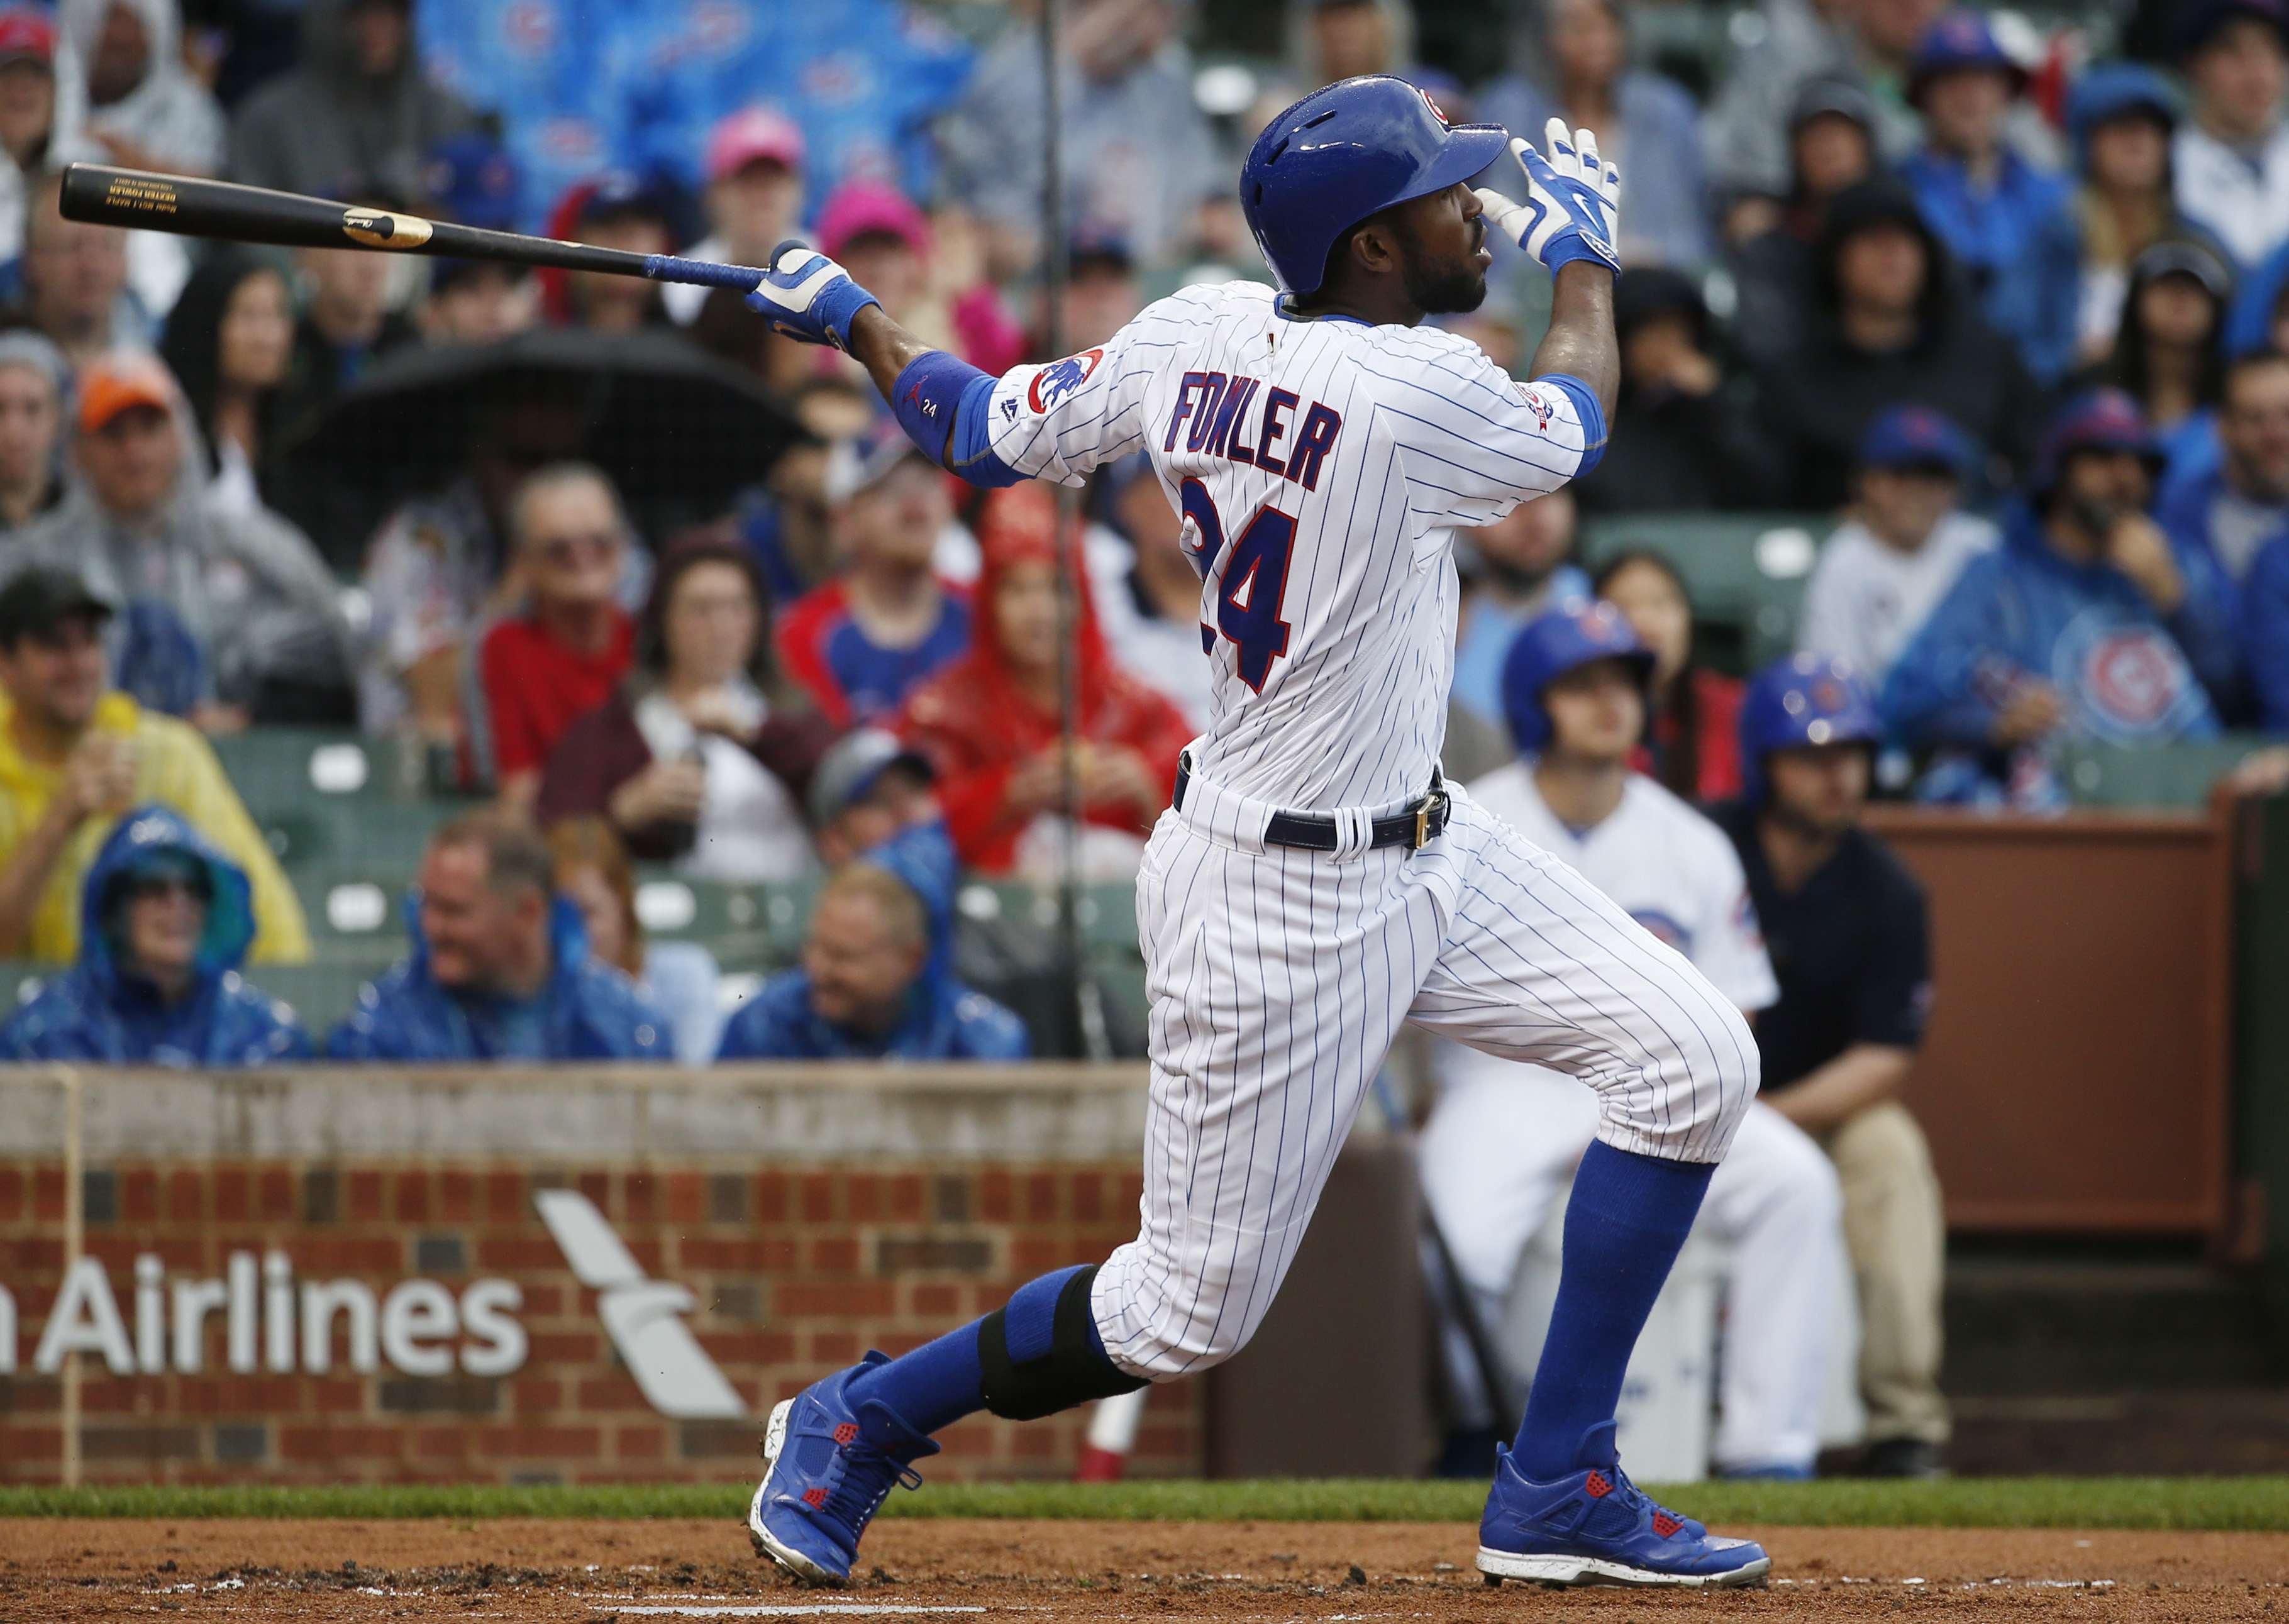 Chicago Cubs' Dexter Fowler watches after hitting a solo home run against the Arizona Diamondbacks during the first inning of a baseball game, Saturday, June 4, 2016, in Chicago. (AP Photo/Nam Y. Huh)